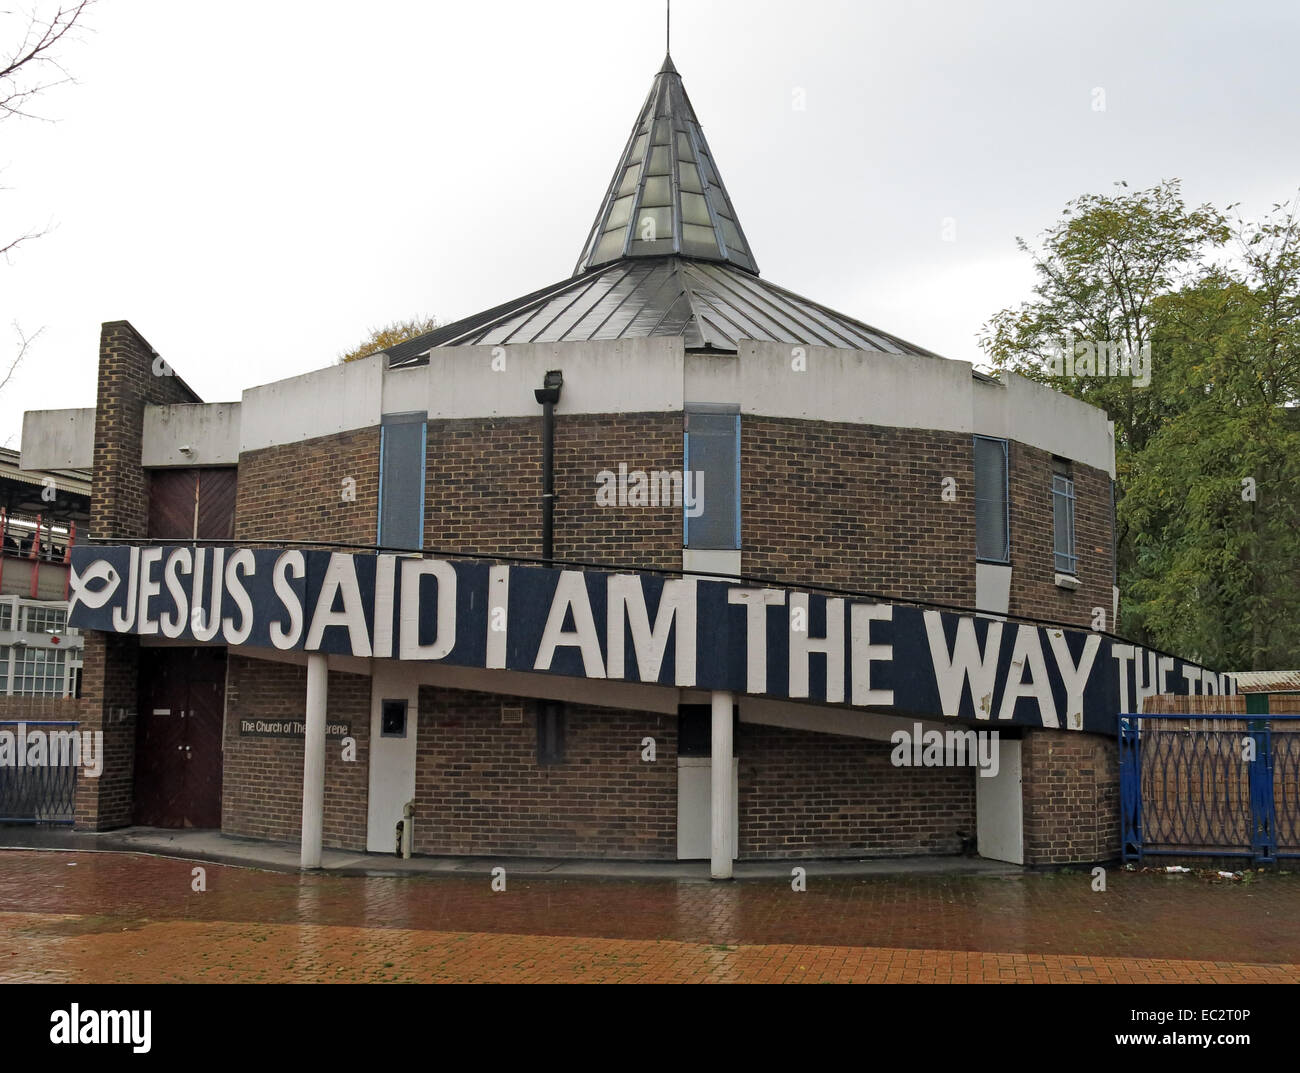 Clapham Junction Community Church of the Nazarene, Jesus Said I am the way the truth and the life - Stock Image